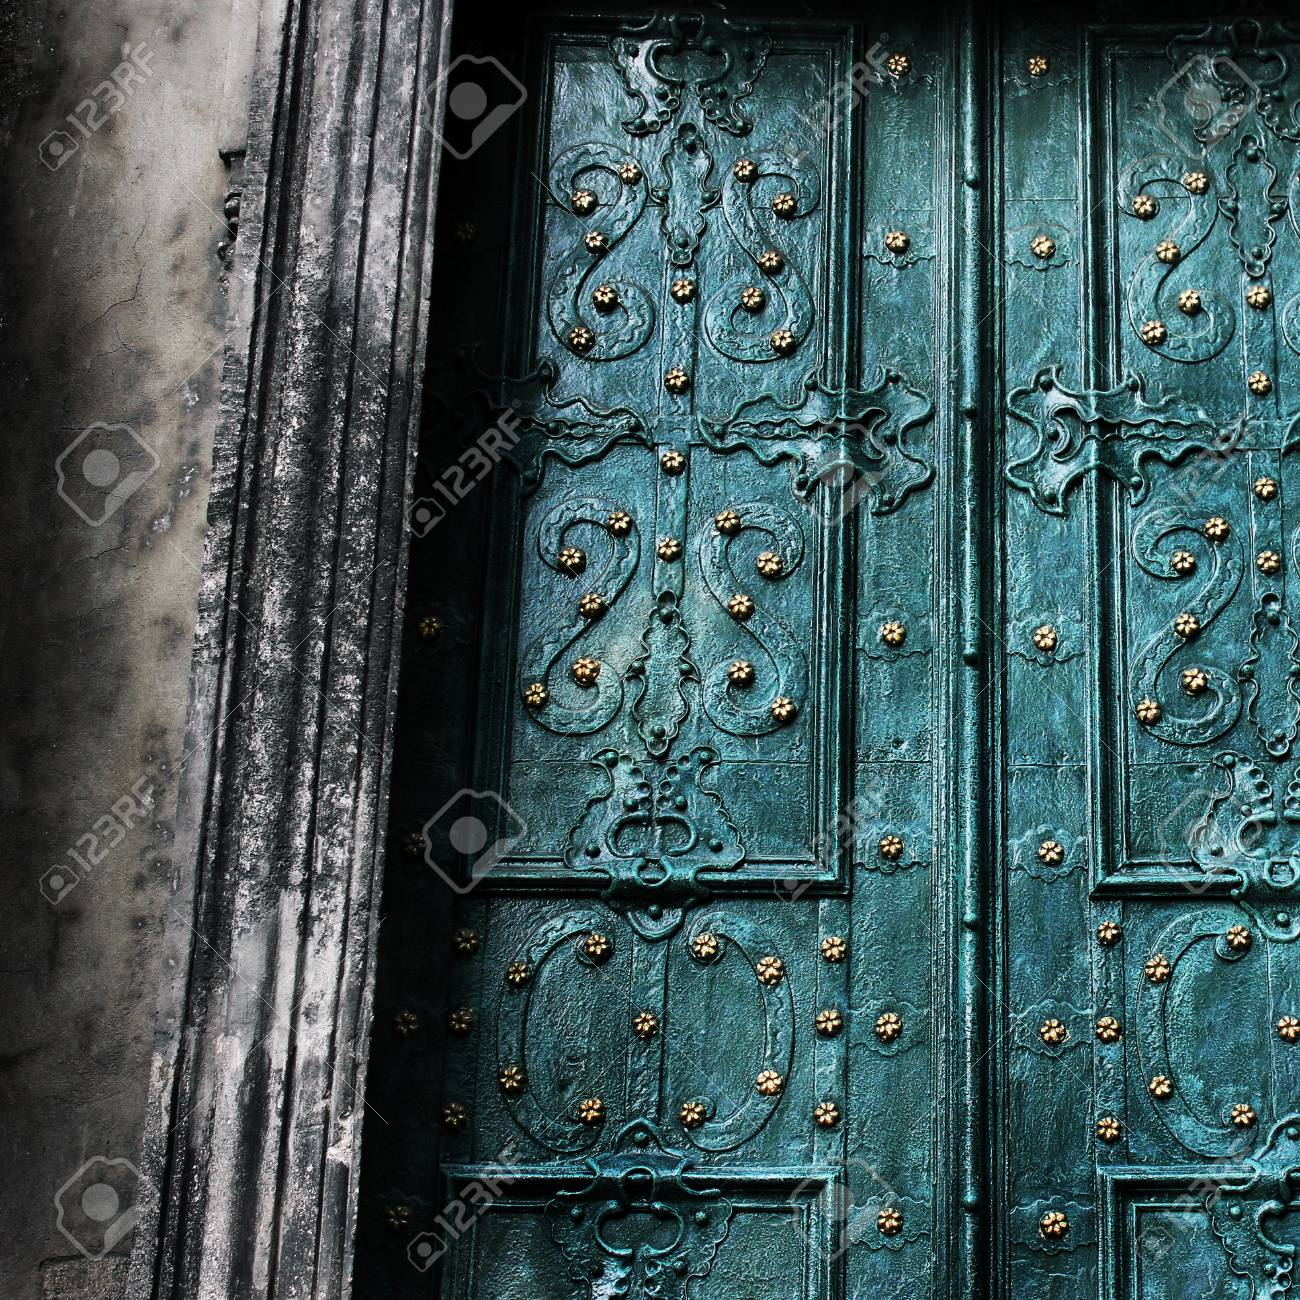 Old Doors Background Abstract Photo Stock Photo Picture And Royalty Free Image Image 116629014